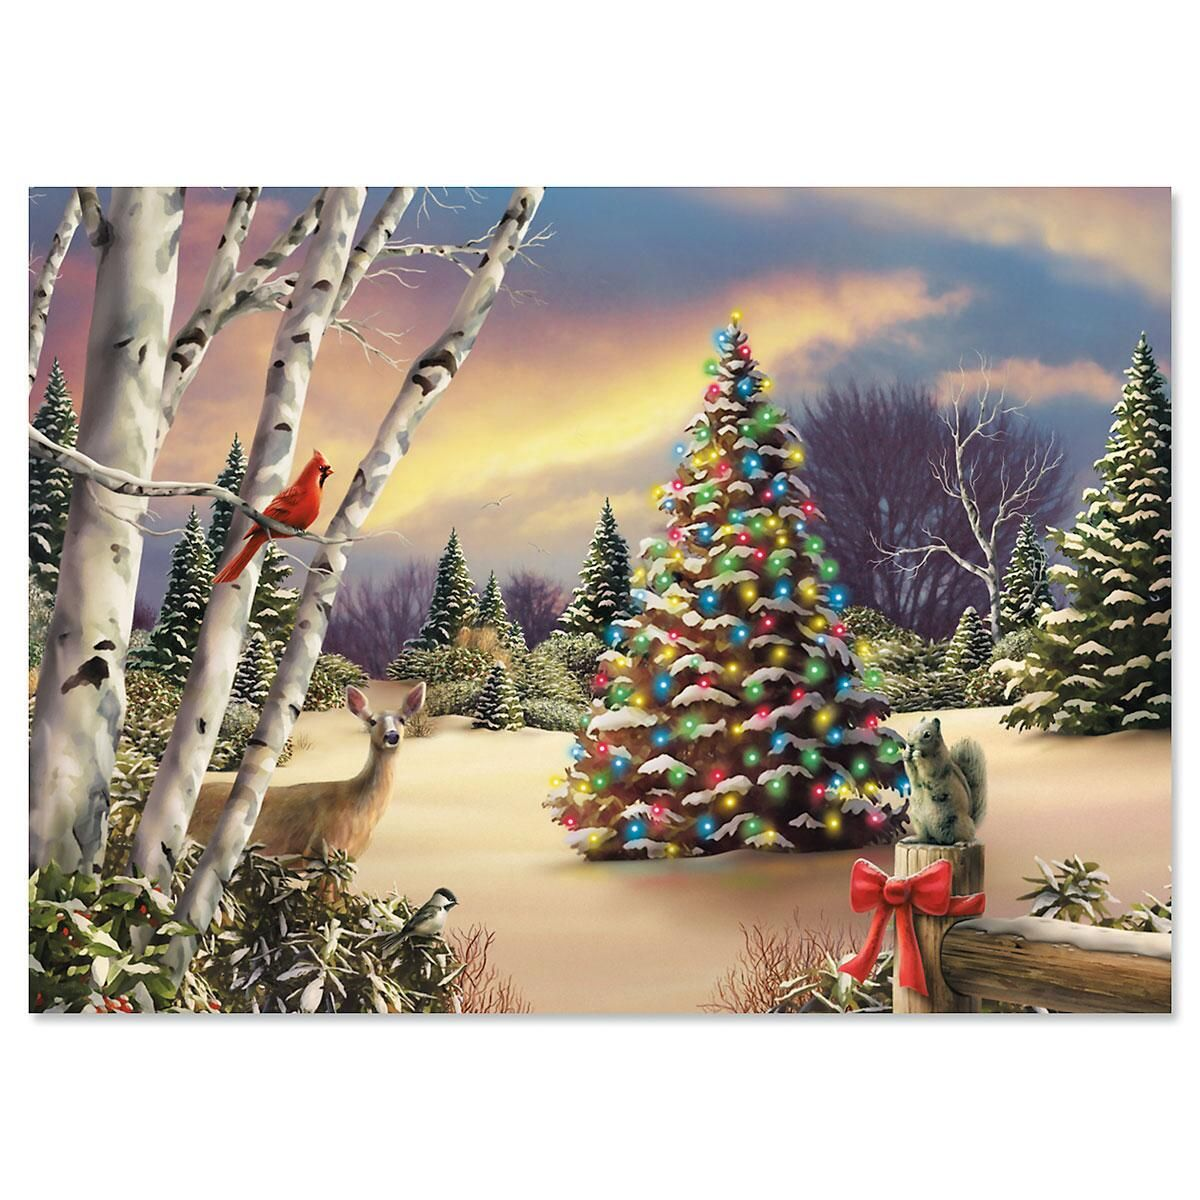 Innocent Light Personalized Christmas Cards - Set of 18